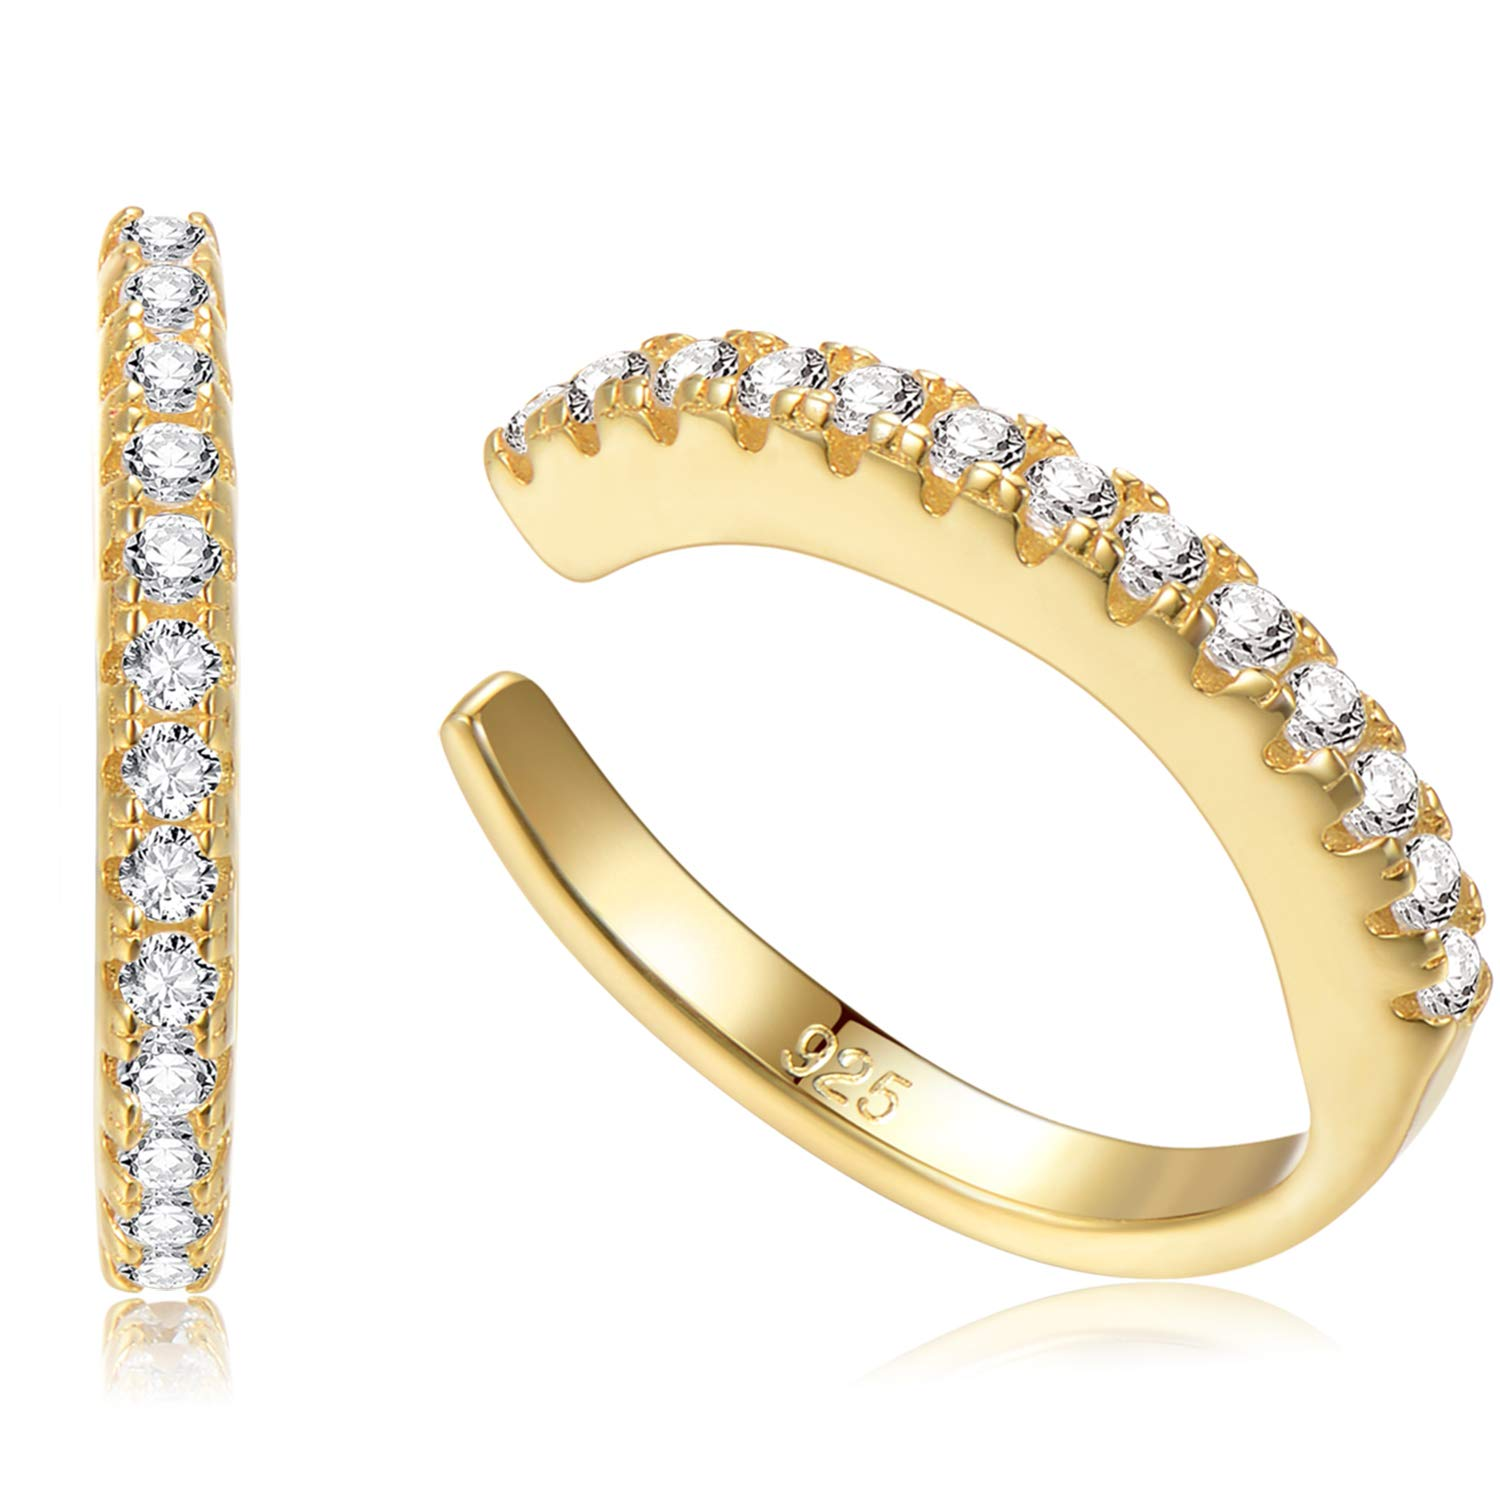 Sterling Silver Ear Cuff No Piercing CZ Ear Wrap, Pair of 2, 18K Yellow Gold Plated by espere